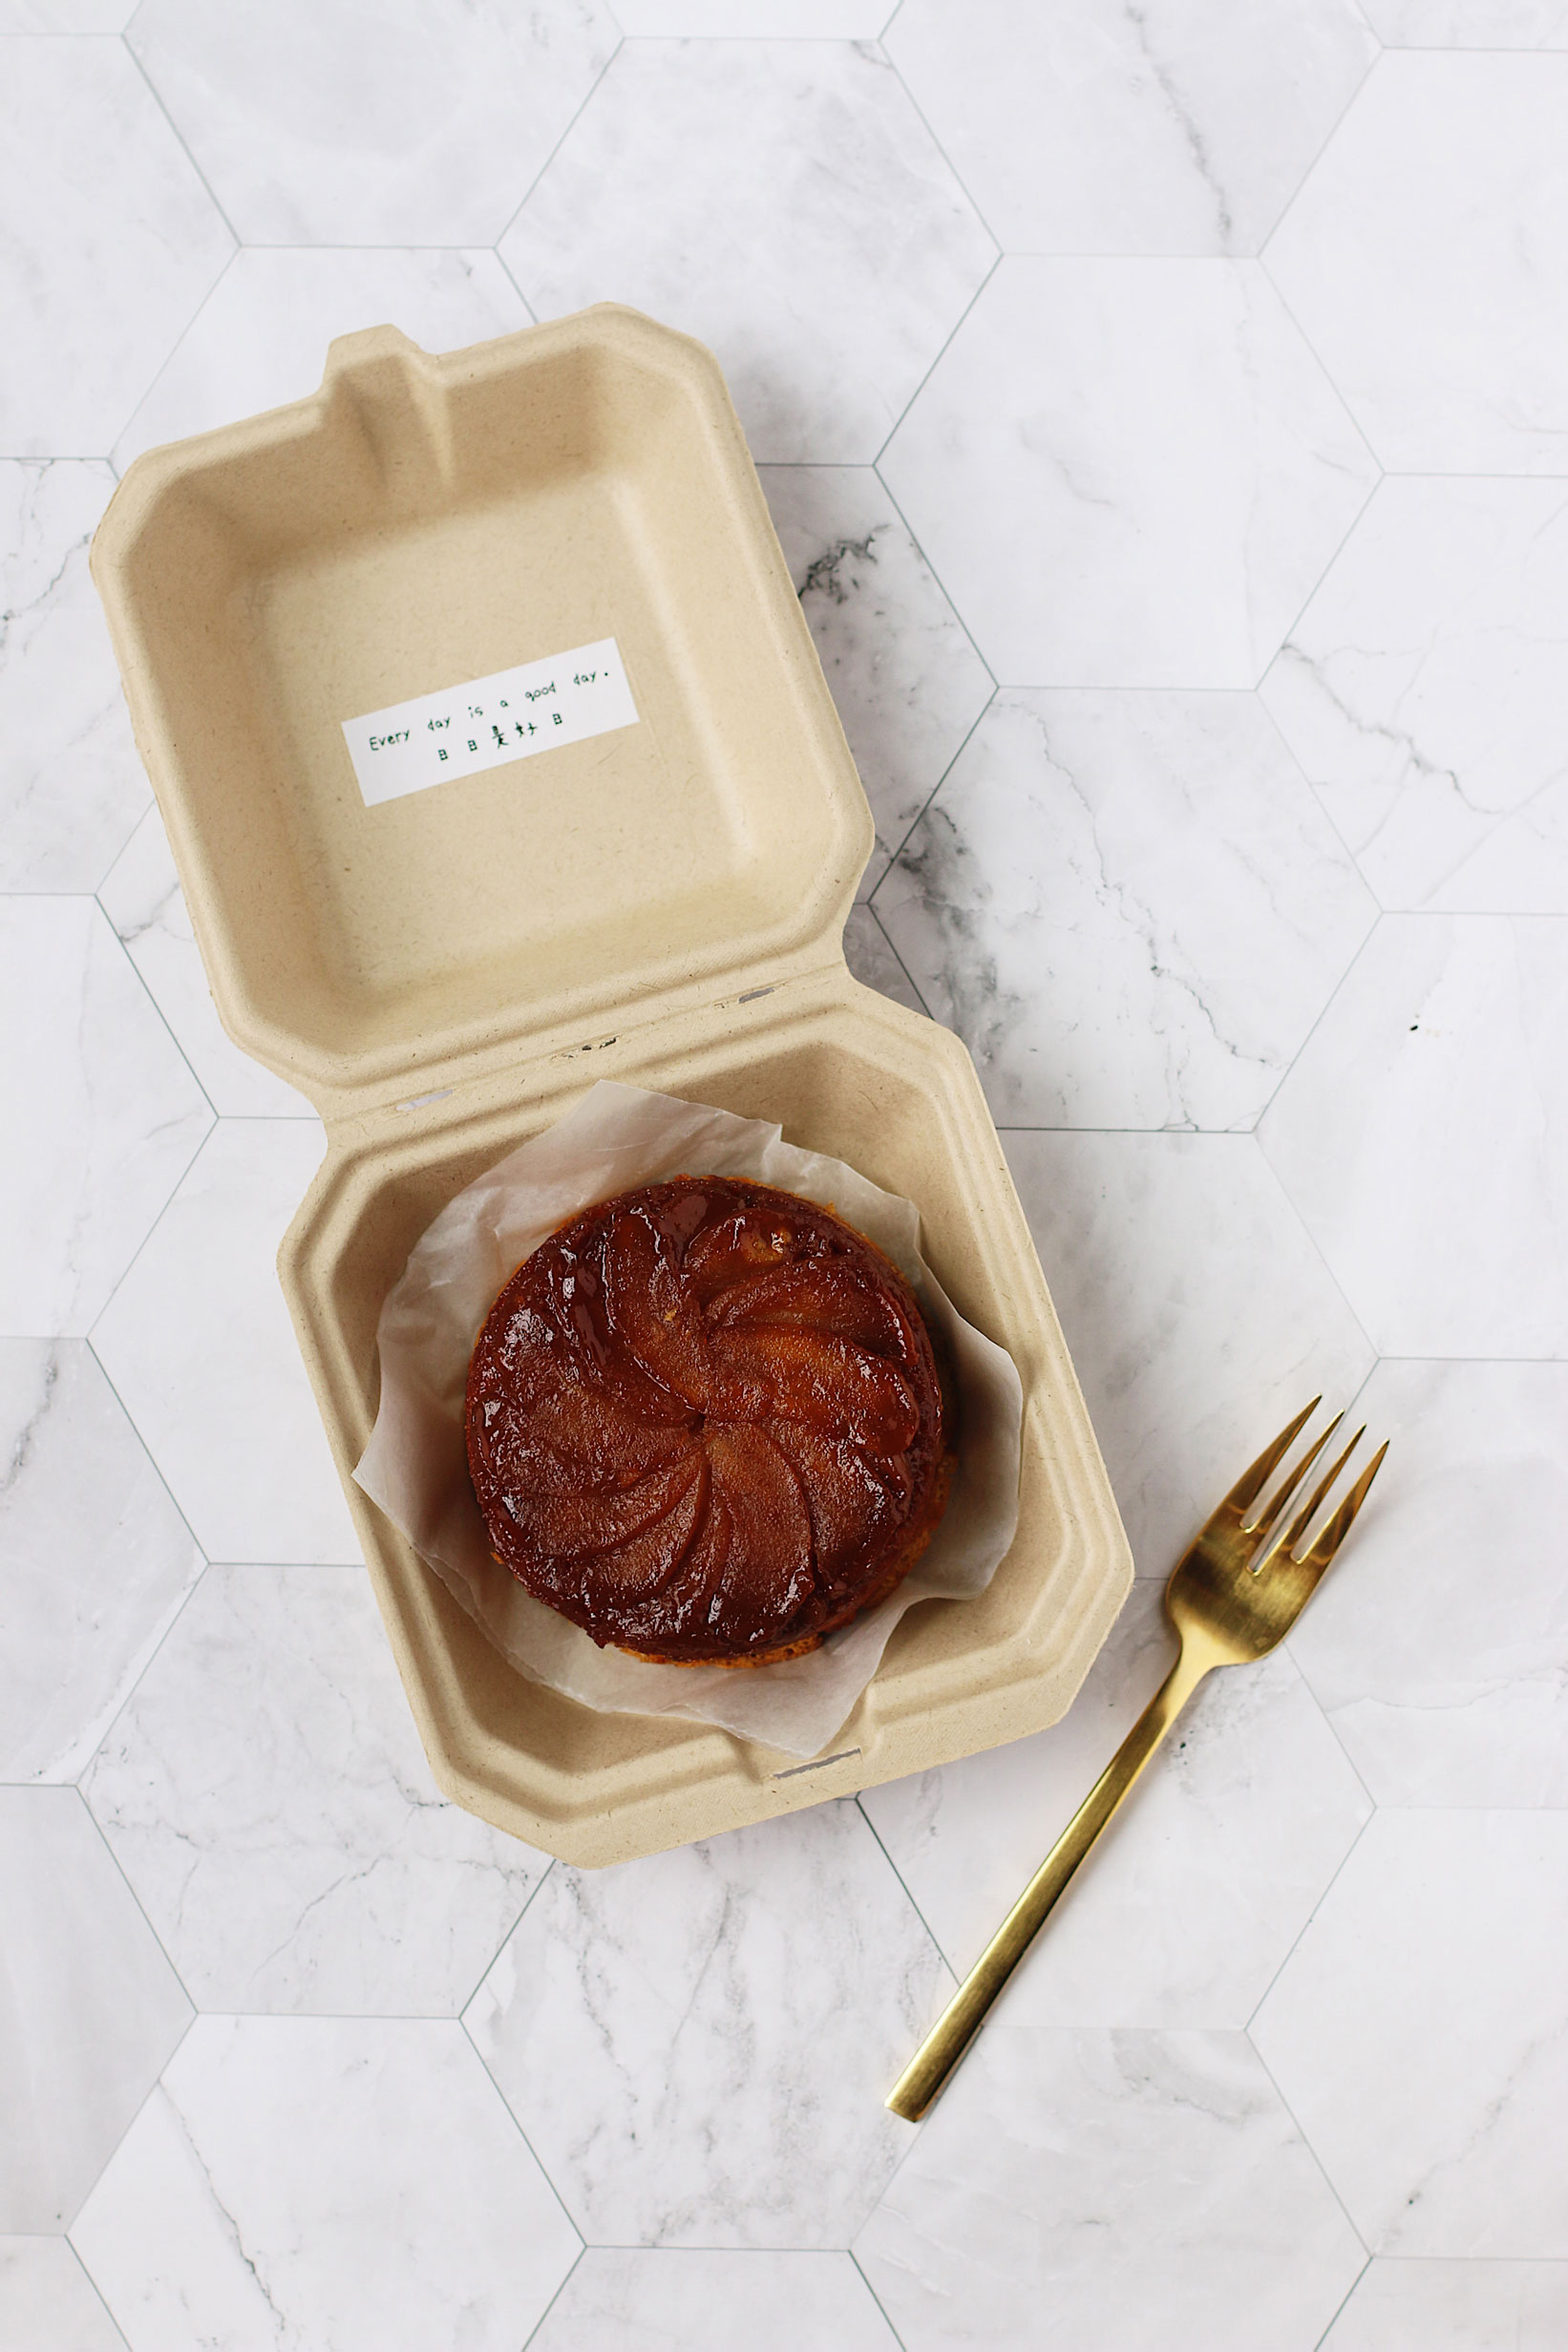 herbakinglab-caramel-apple-upside-down-cake-in-the-box